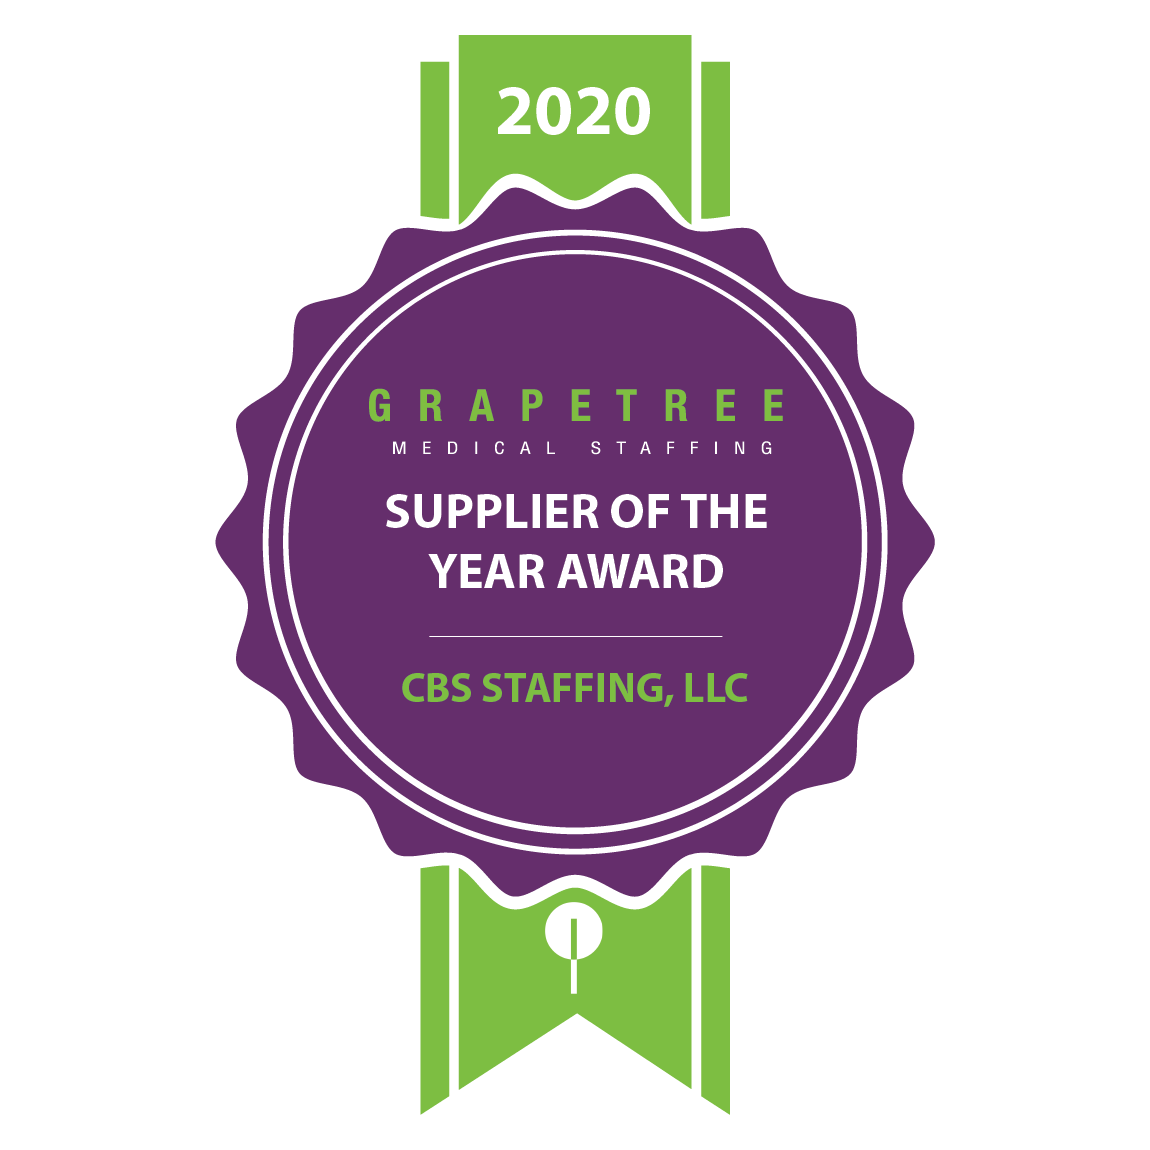 SUPPLIER PARTNER OF THE YEAR CBS Staffing, LLC